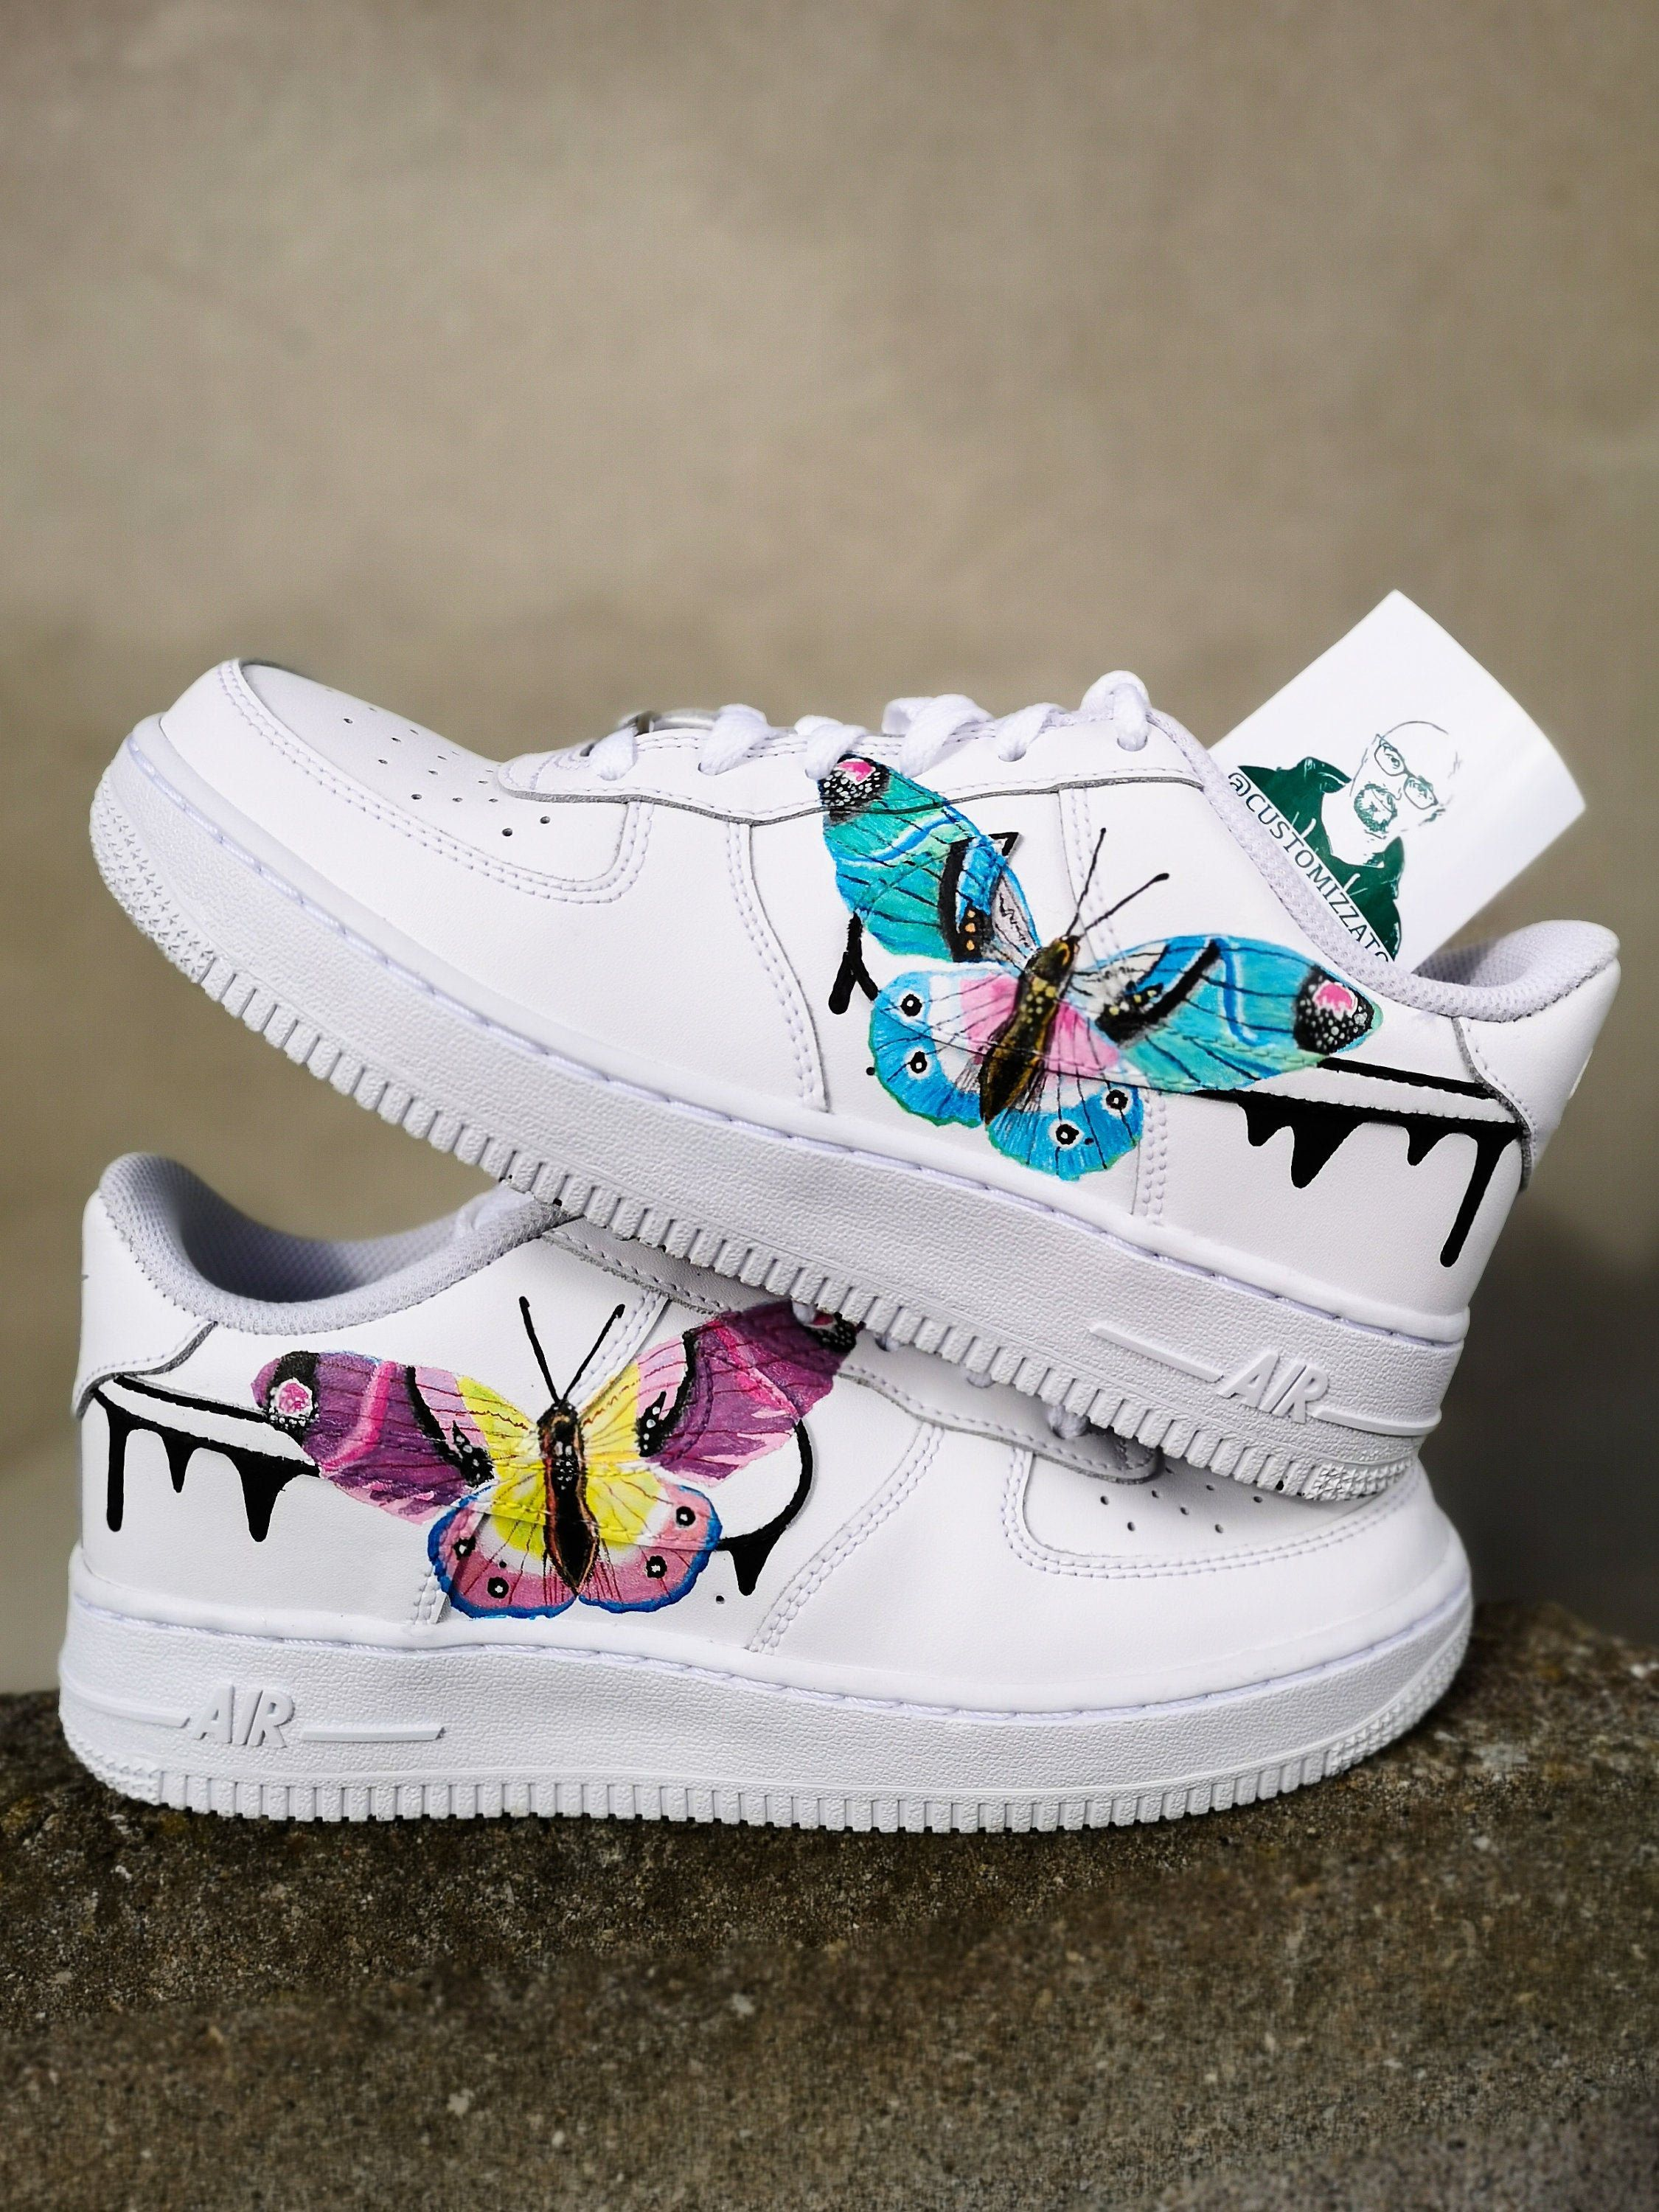 Personalizadas Nike Air Force 1 ''Mariposas'' in 2020 | Nike ...